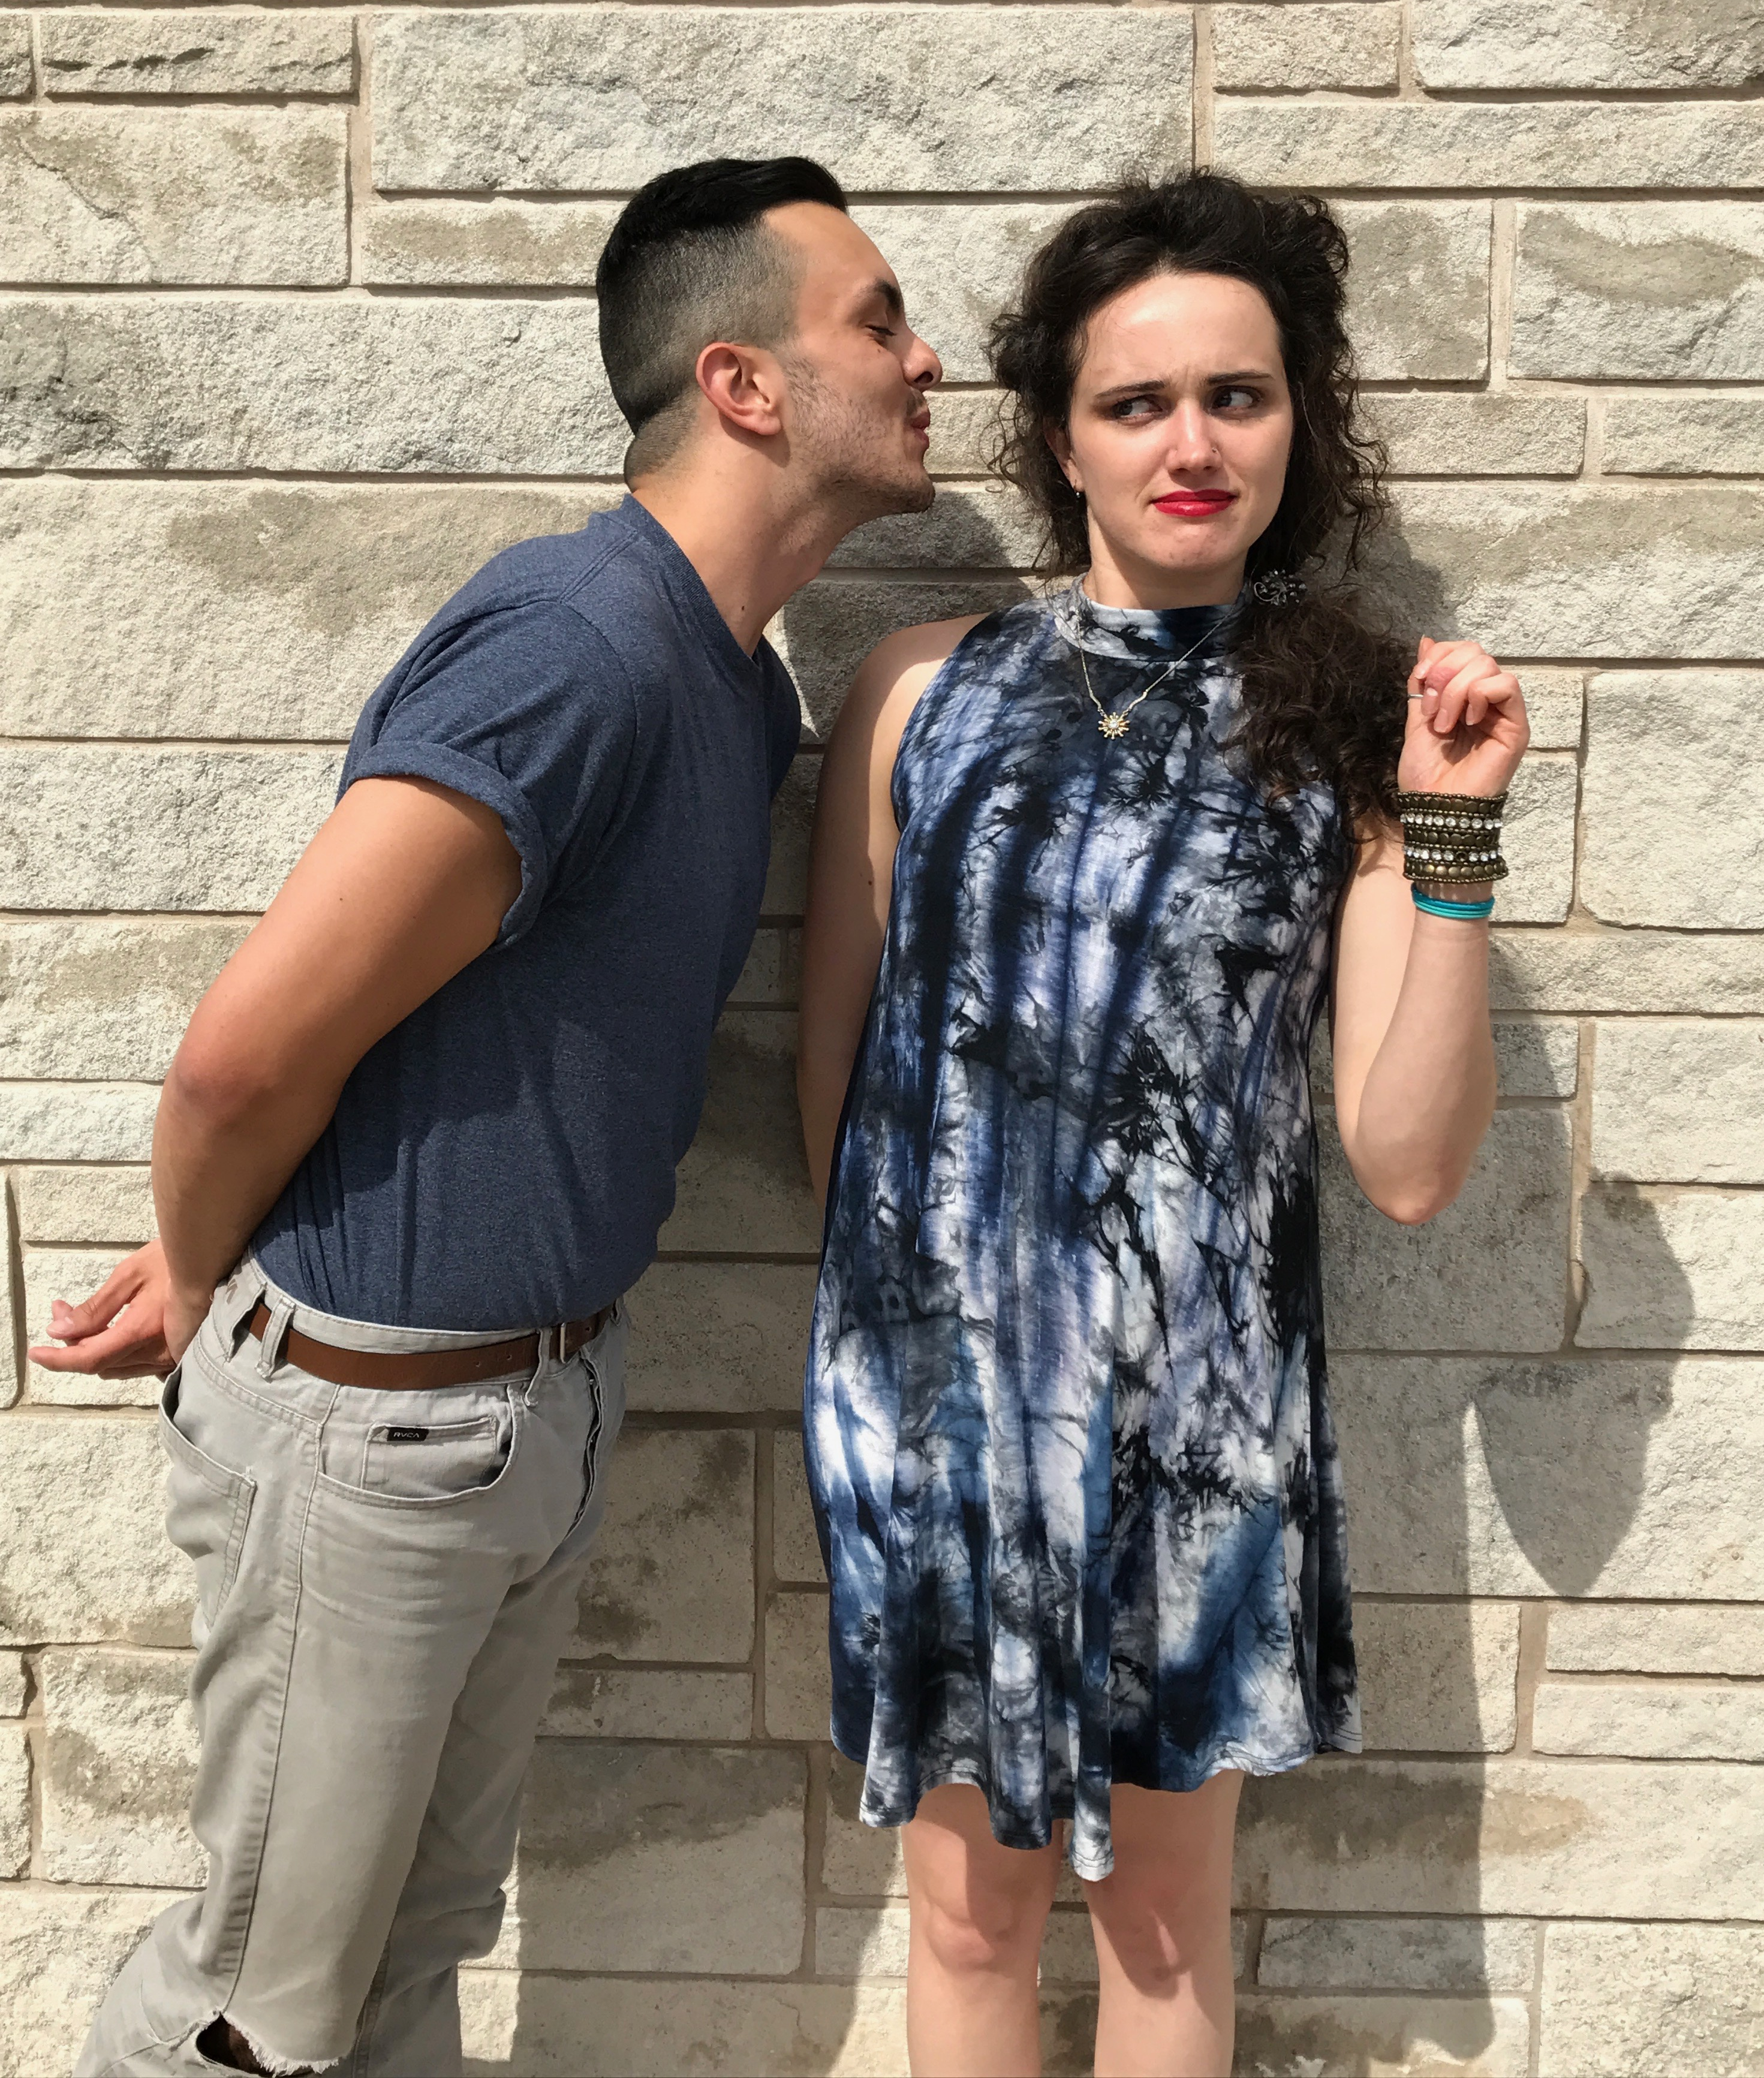 BWW Review: LOVE'S LABOUR'S LOST at Greater Hartford Shakespeare Festival